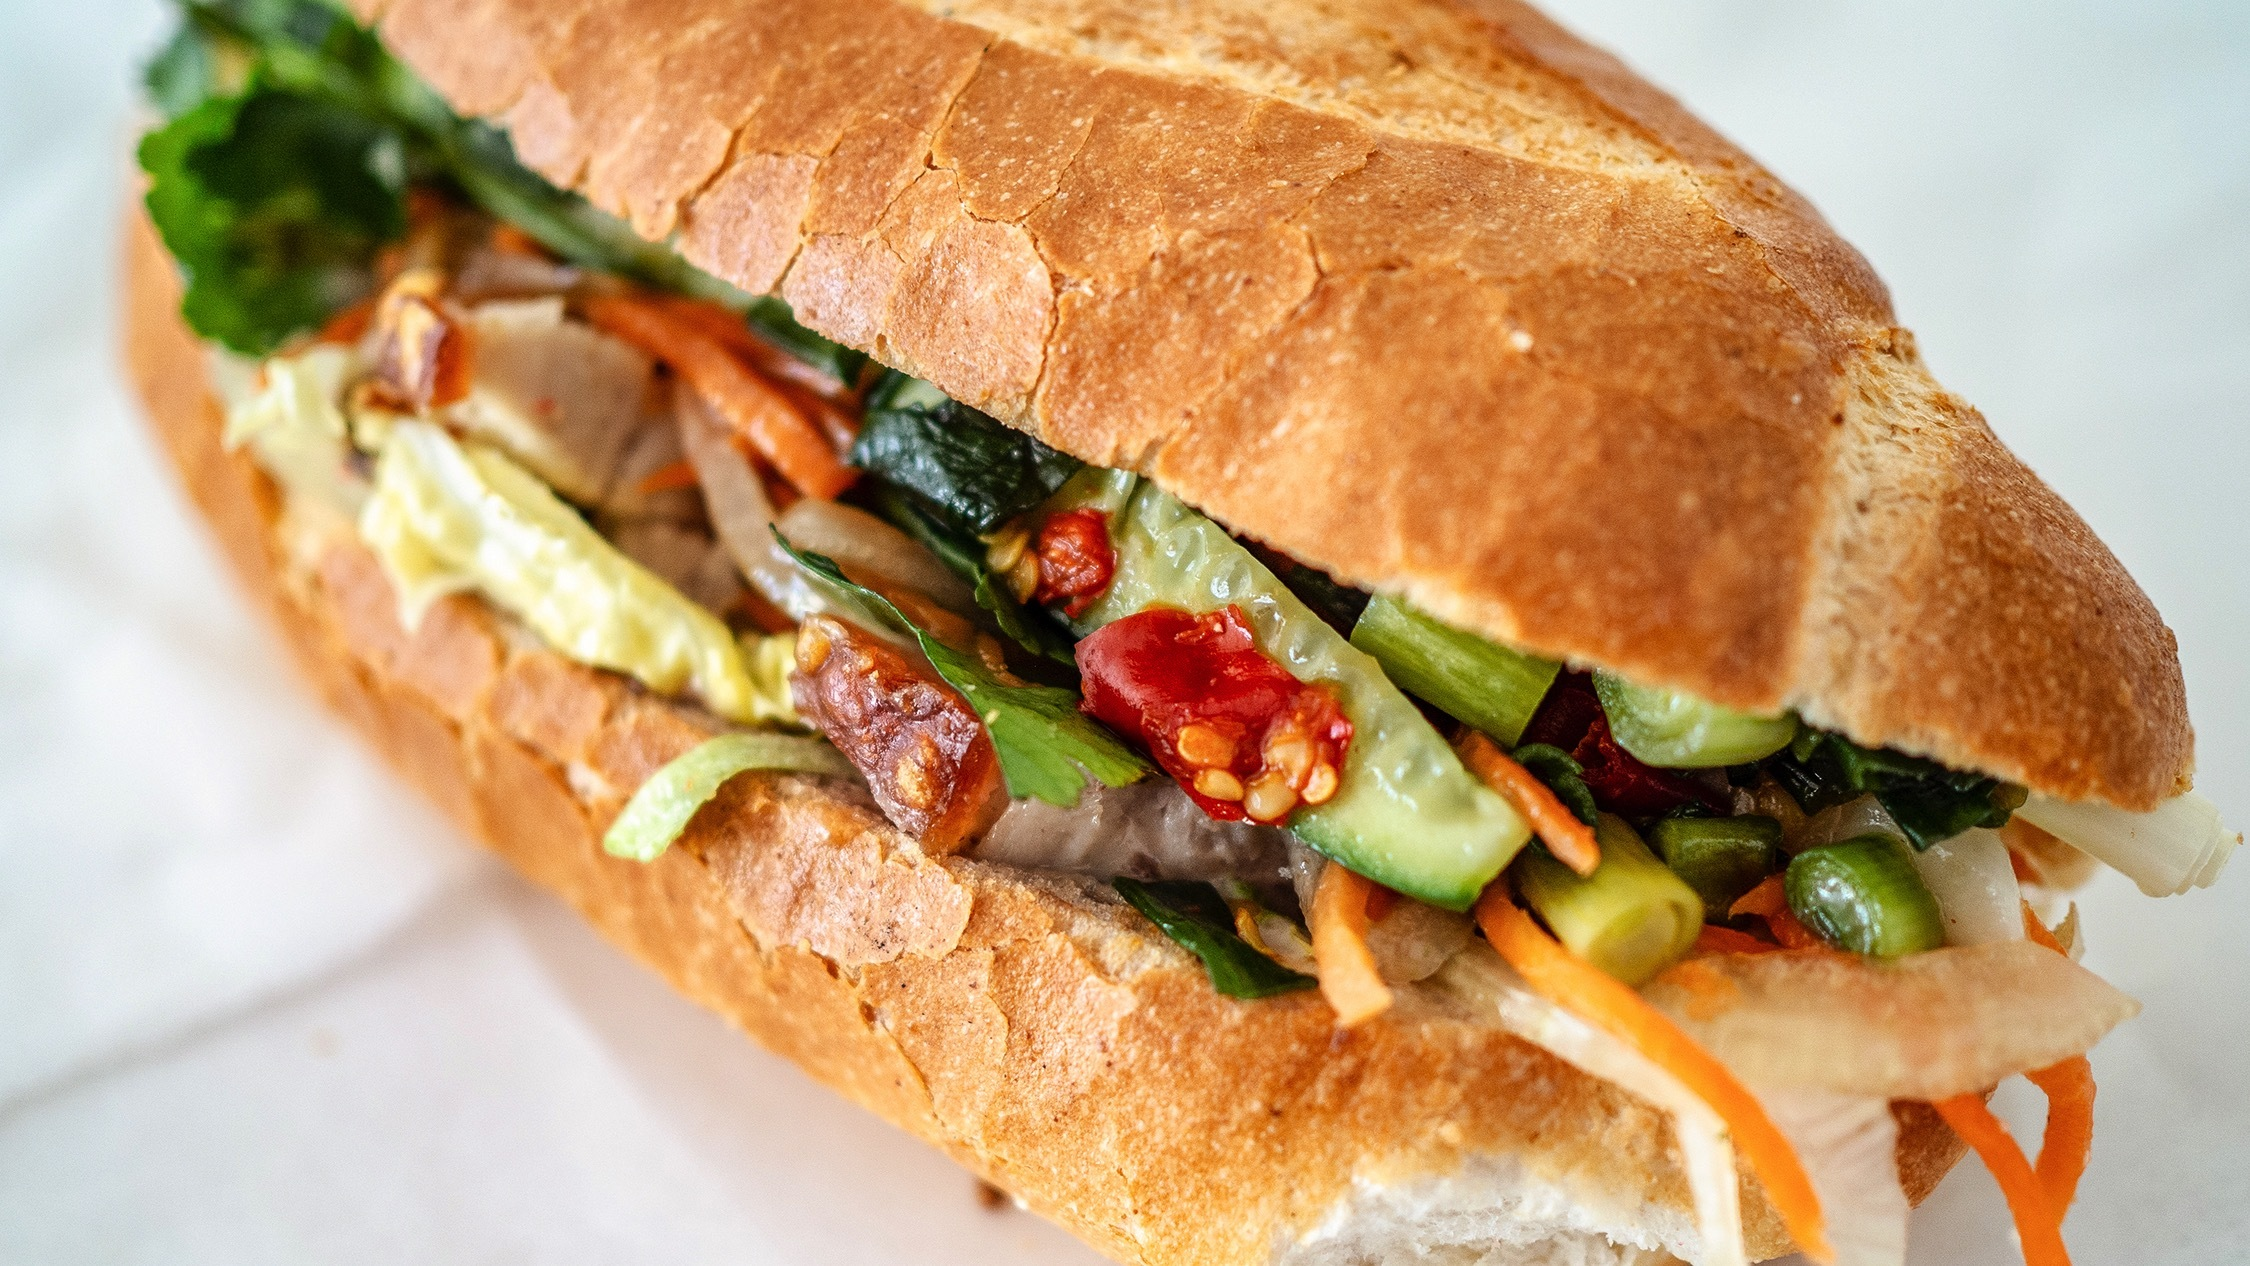 A close-up of a Vietnamese banh mi